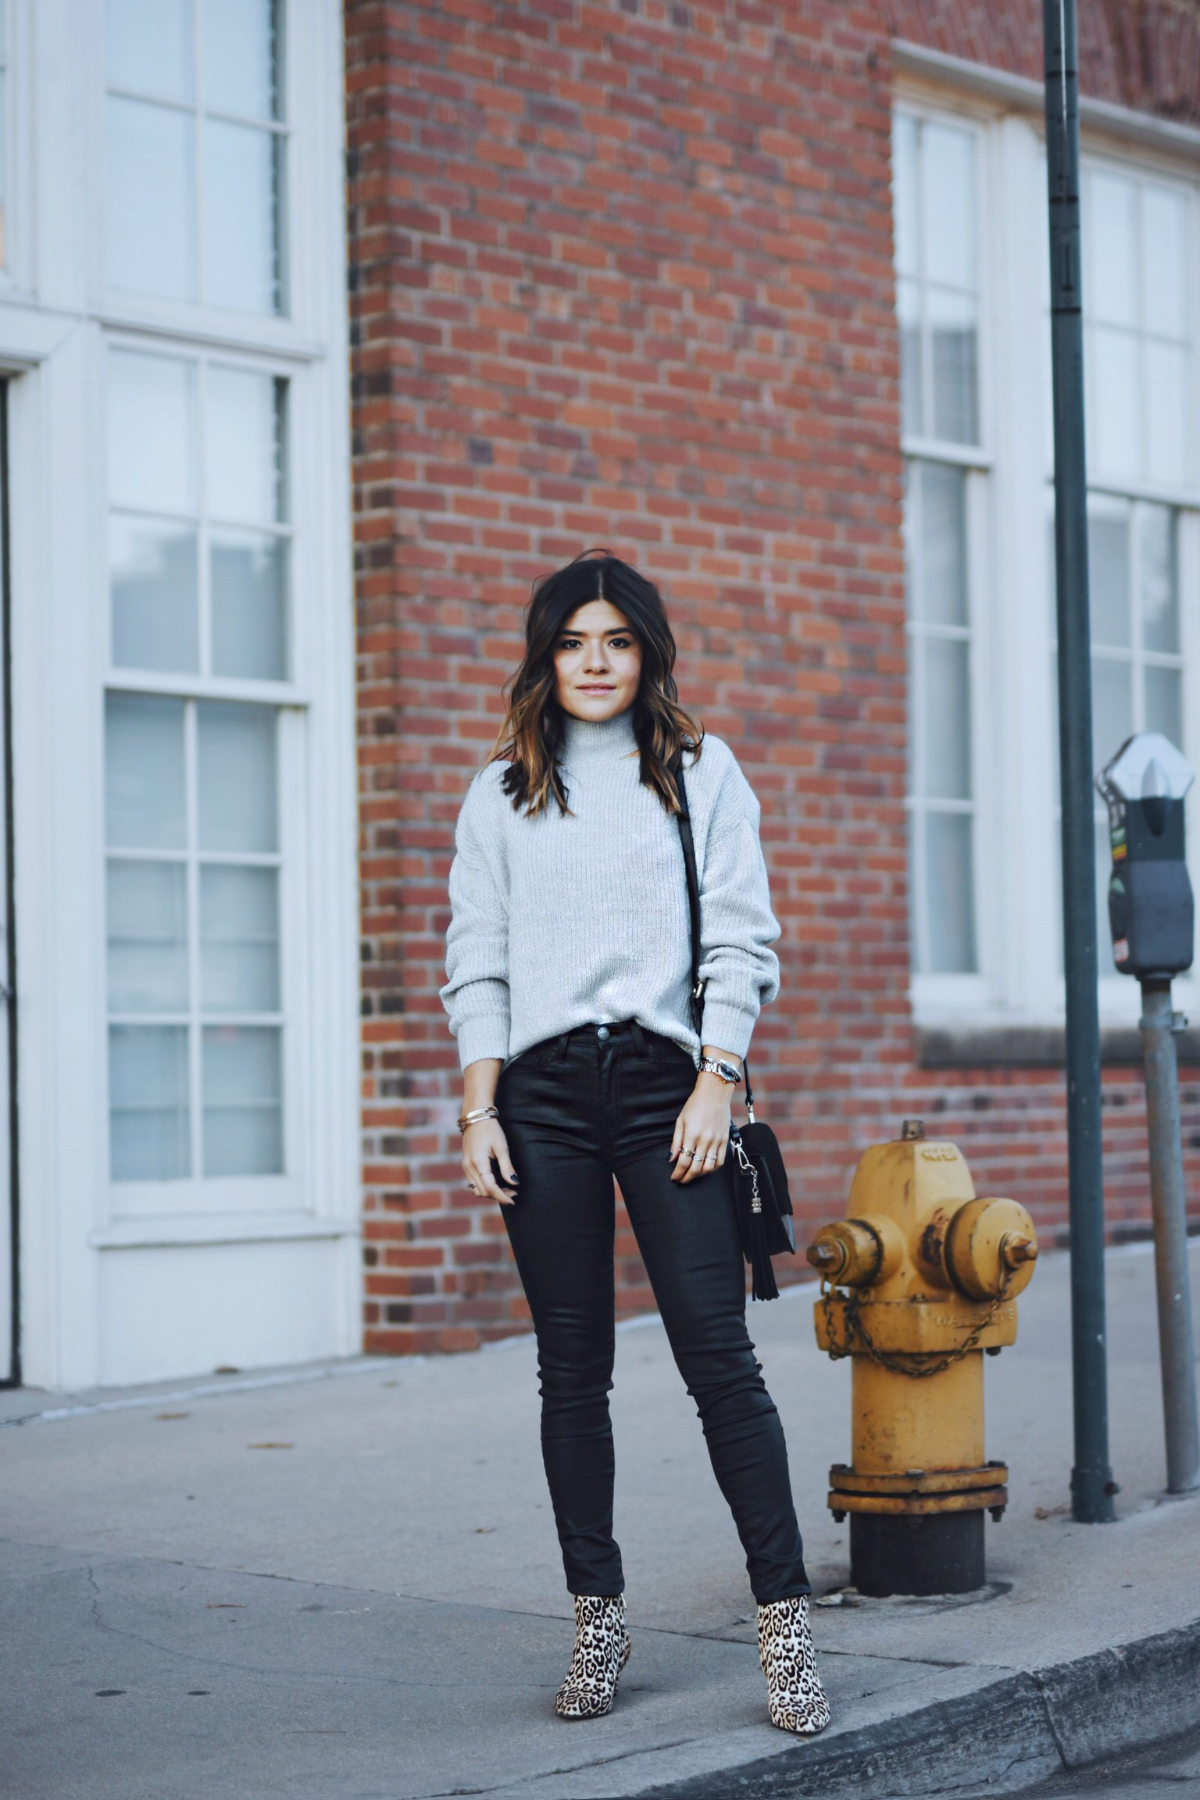 Carolina Hellal of Chic Talk wearing a Nordstrom sweater, Current Elliot waxed jeans and Sam Edelman booties